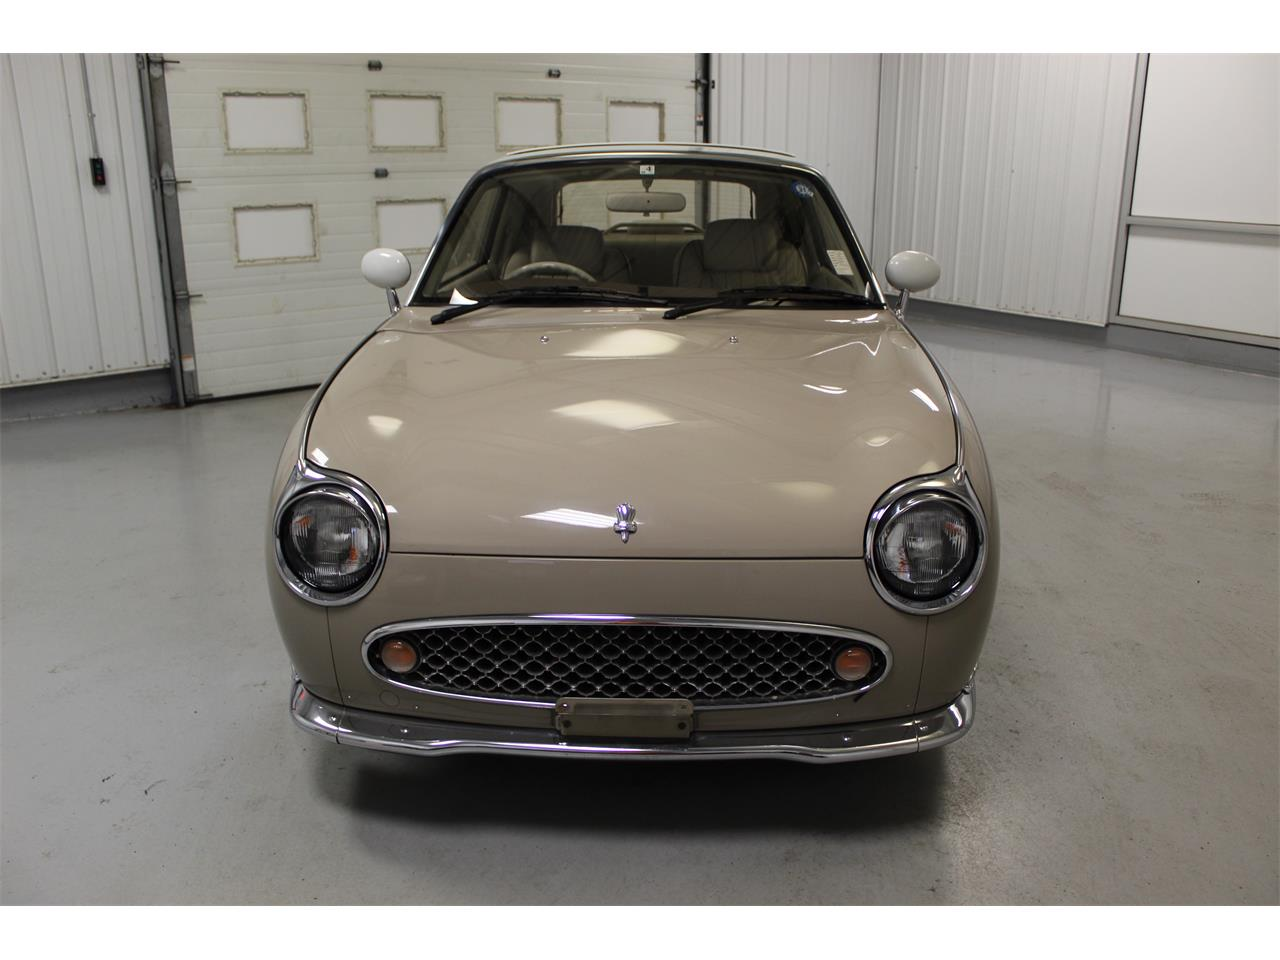 1991 Nissan Figaro for sale in Christiansburg, VA – photo 4